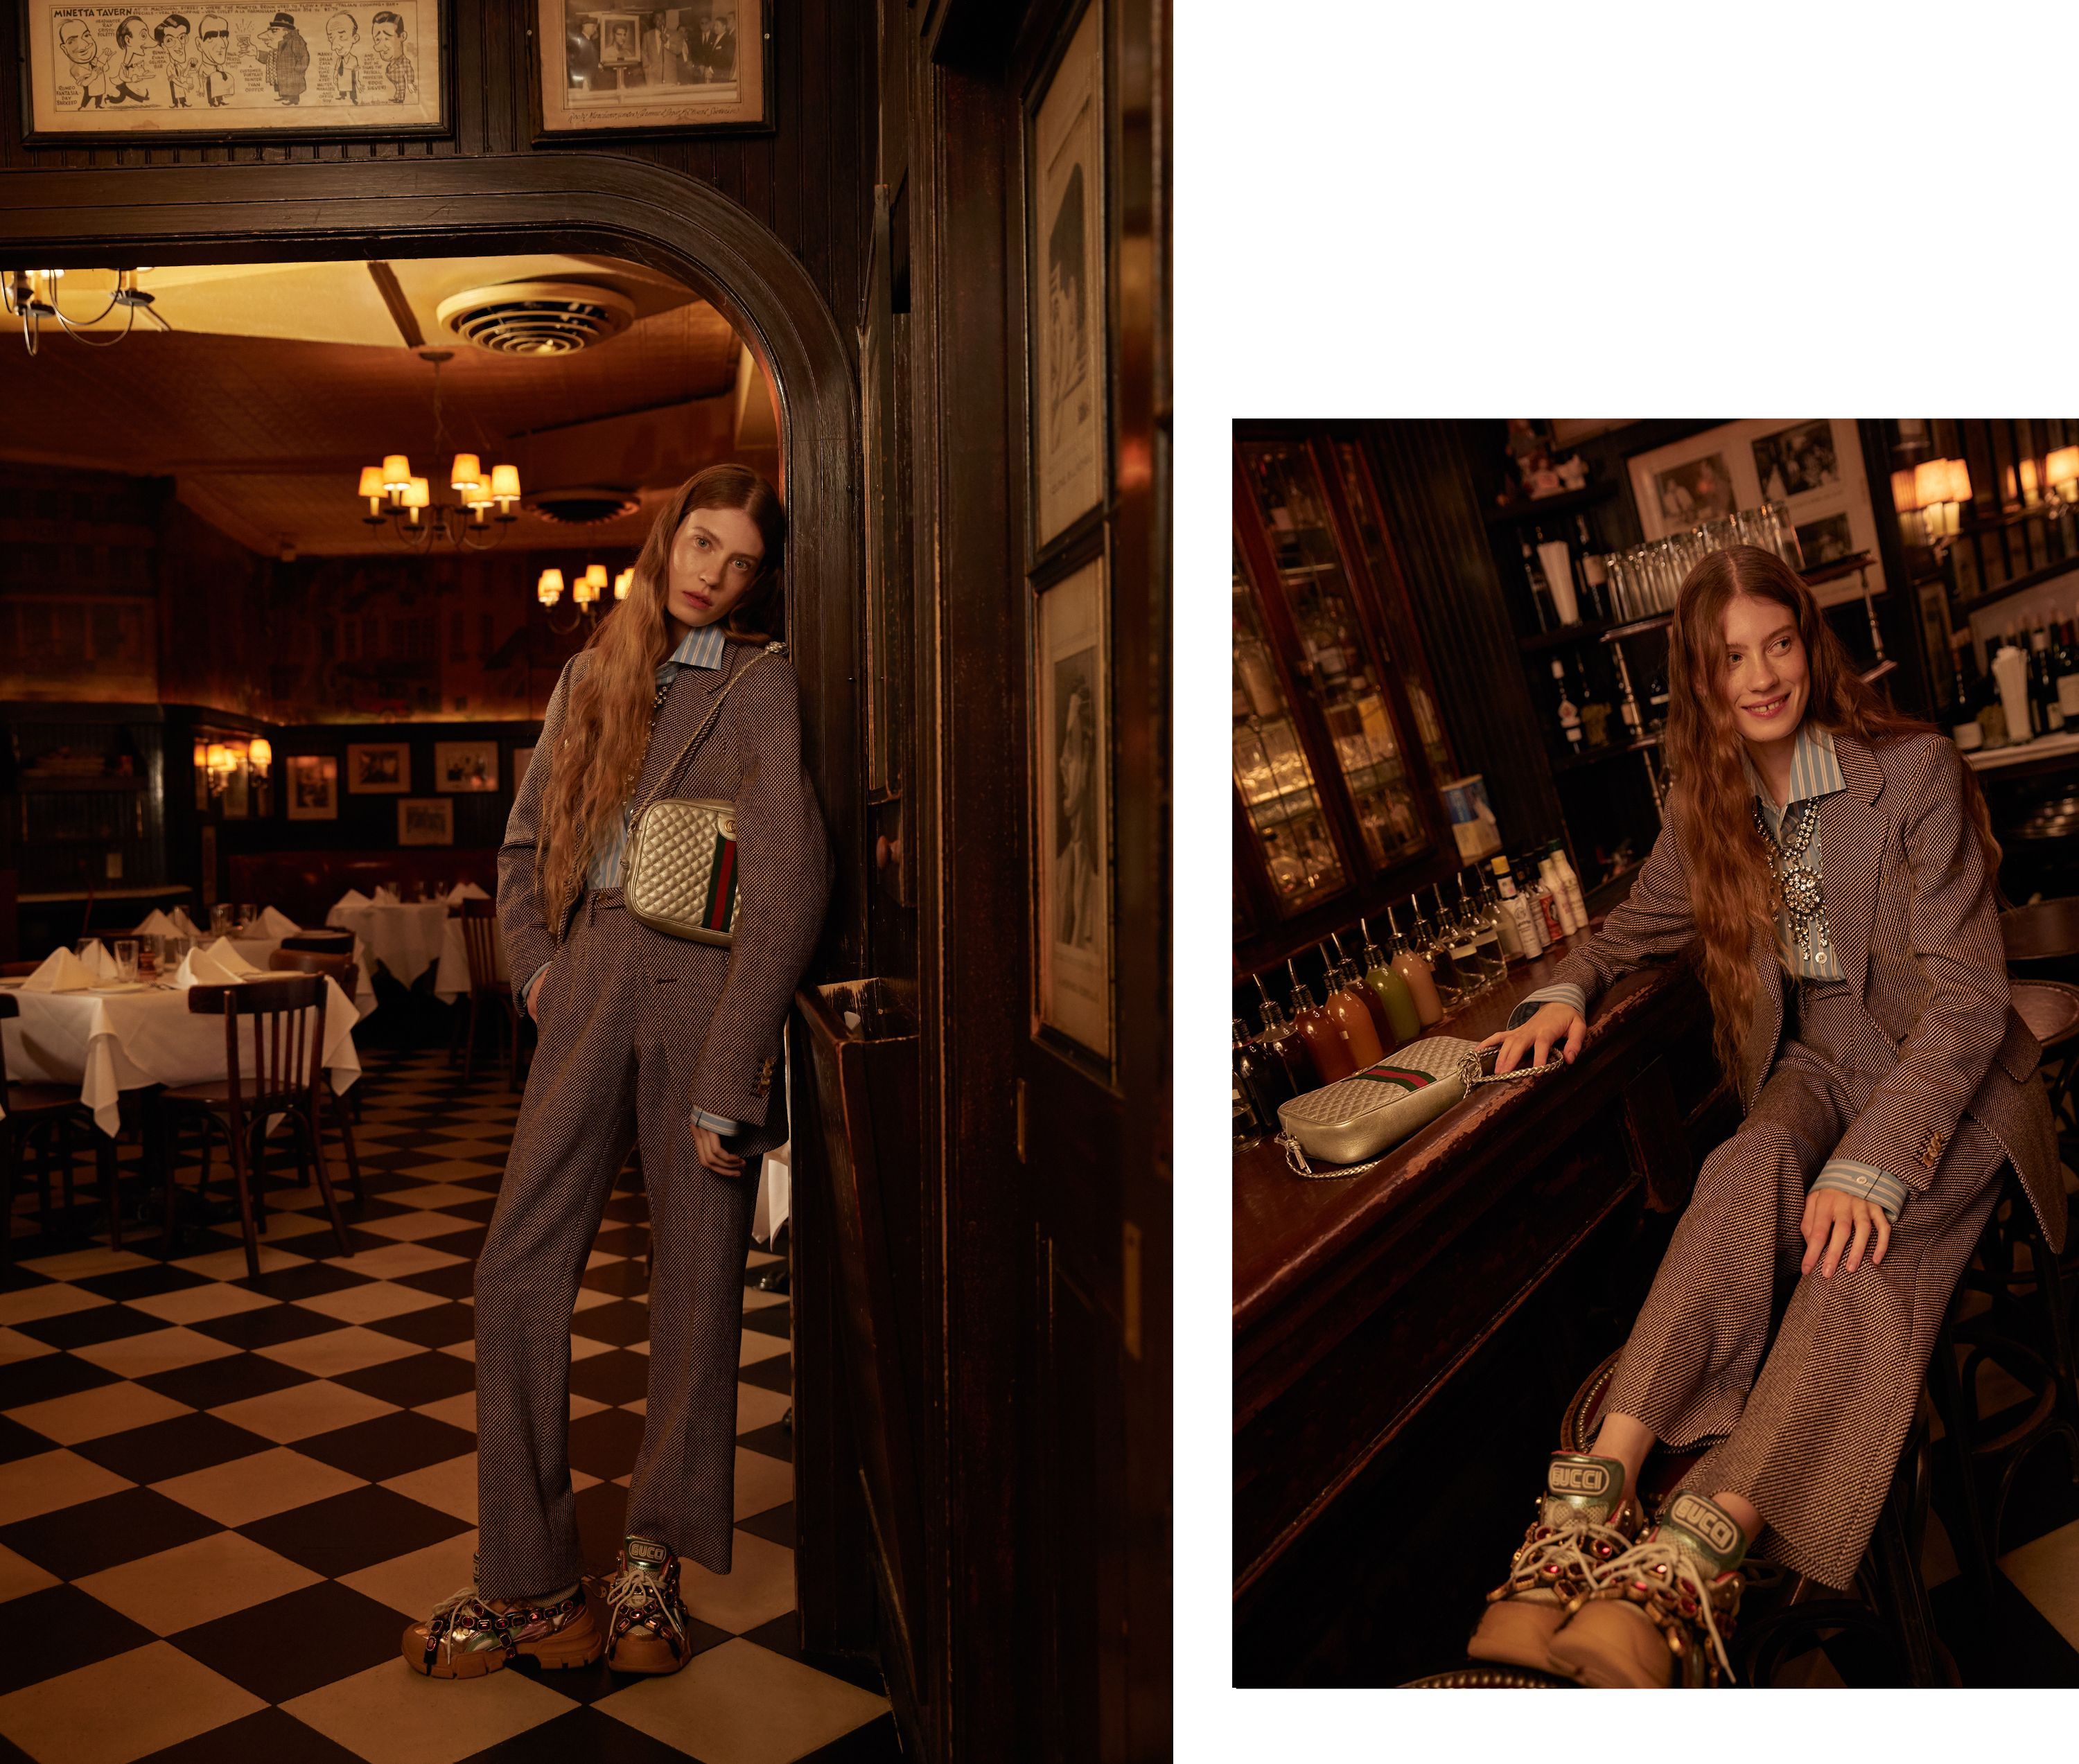 A model wearing Gucci standing in a bar